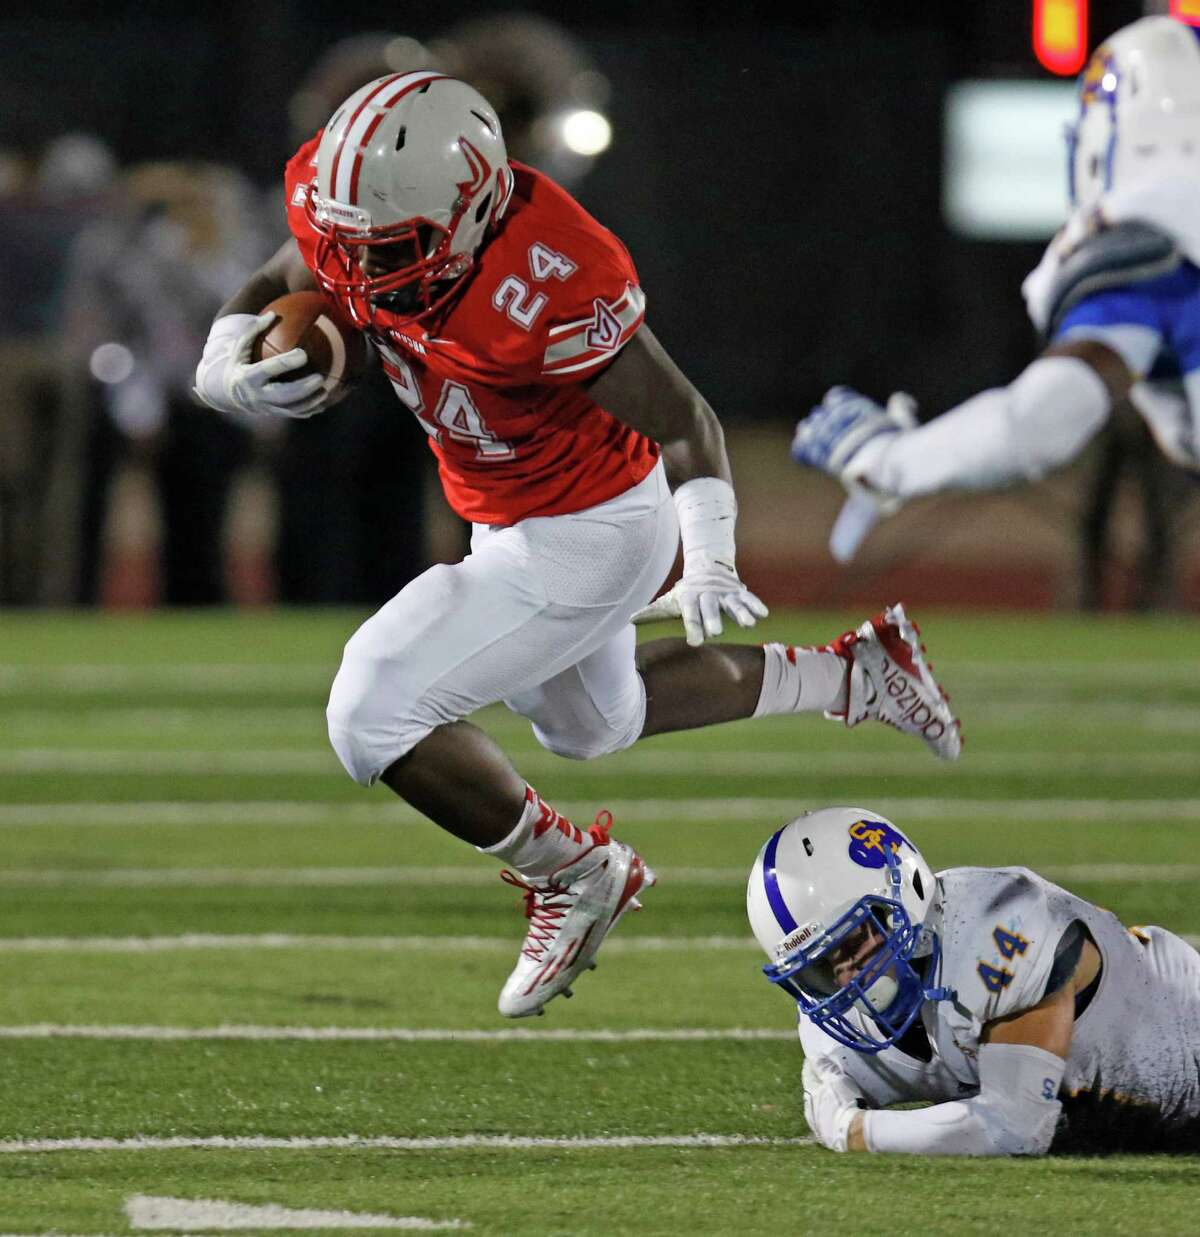 Judson Mi'Kel Jackson leaps out of the grasp of Clemens' Luke Jennings in the second quarter during a District 25-6A game between at Rutledge Stadium on Sept. 25, 2015.